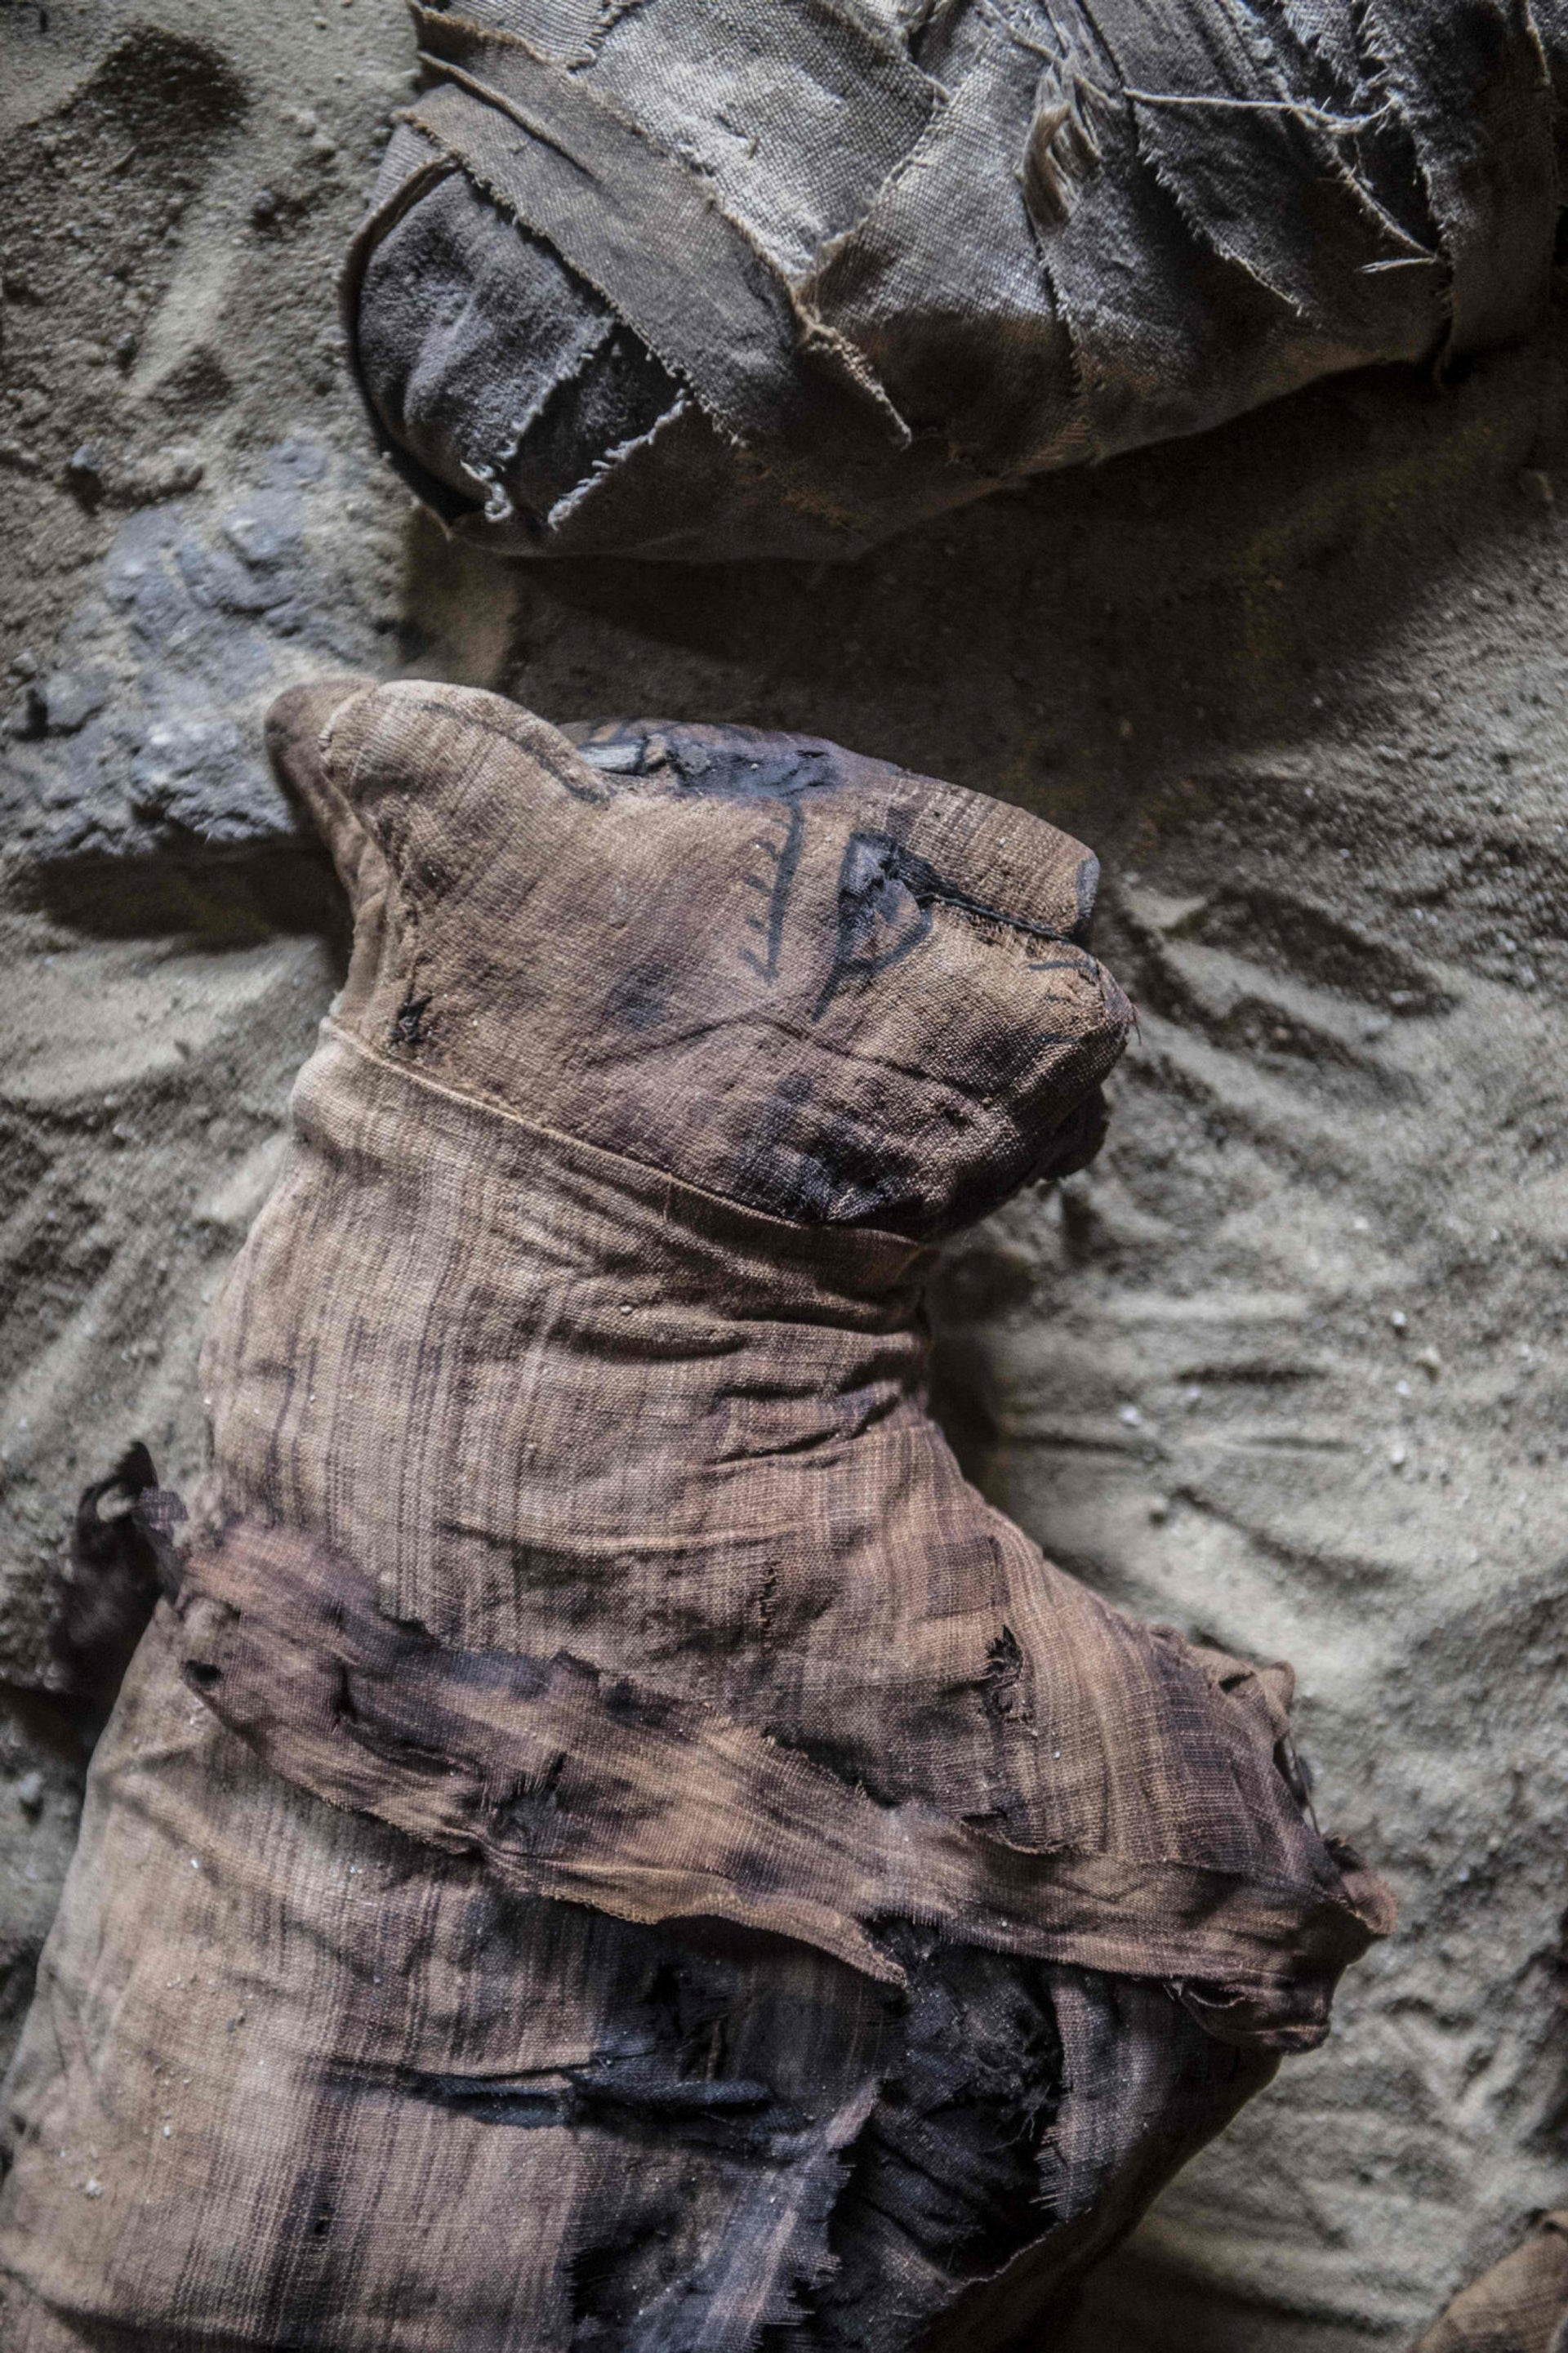 Mummified cats are seen at a new discovery made by an Egyptian archaeological mission during the demonstration of a new discovery made by an Egyptian archaeological mission through excavation work at the area located on the stony edge of King Userkaf pyramid complex in Saqqara Necropolis, south of the capital Cairo on November 10, 2018.